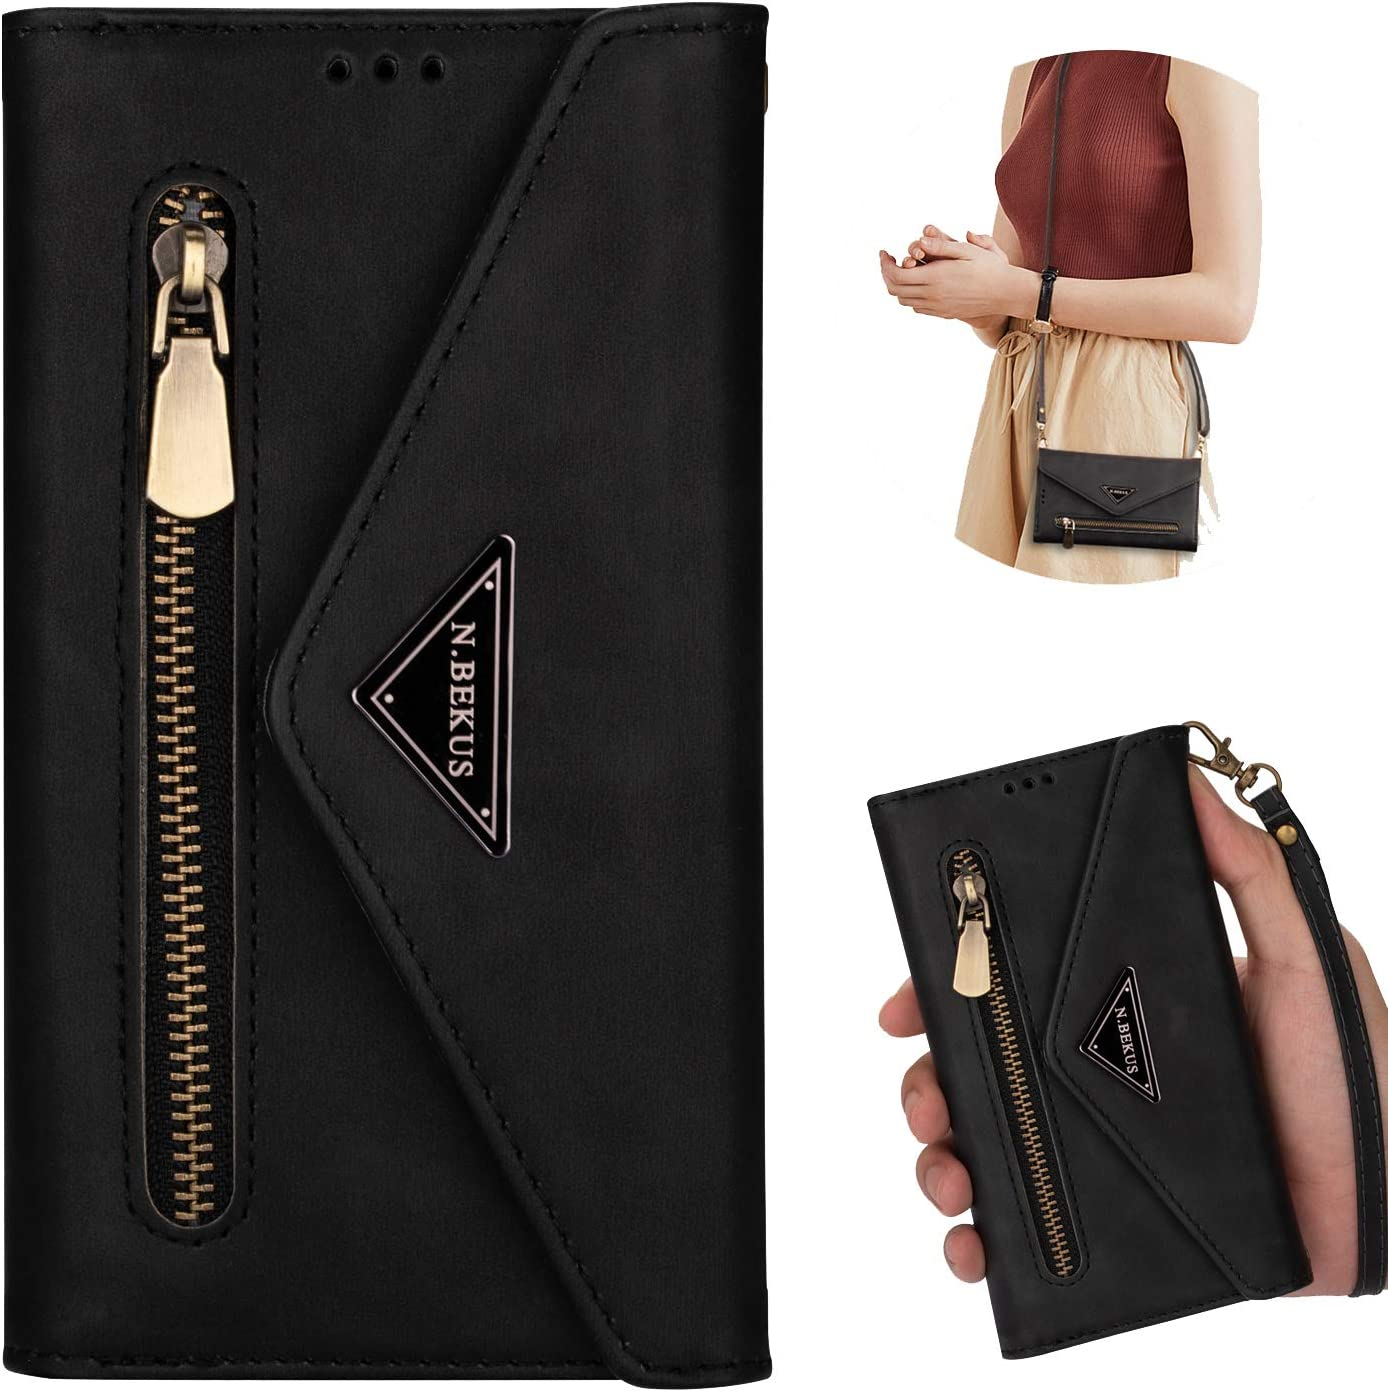 Samsung Galaxy S20 FE 5G Wallet Case,ZYZX Crossbody Neck Strap Lanyard Purse Handbag Shoulder Strap Cover PU Leather Credit ID Card Holder Kickstand Stand Case for Galaxy S20 FE 5G XK Black